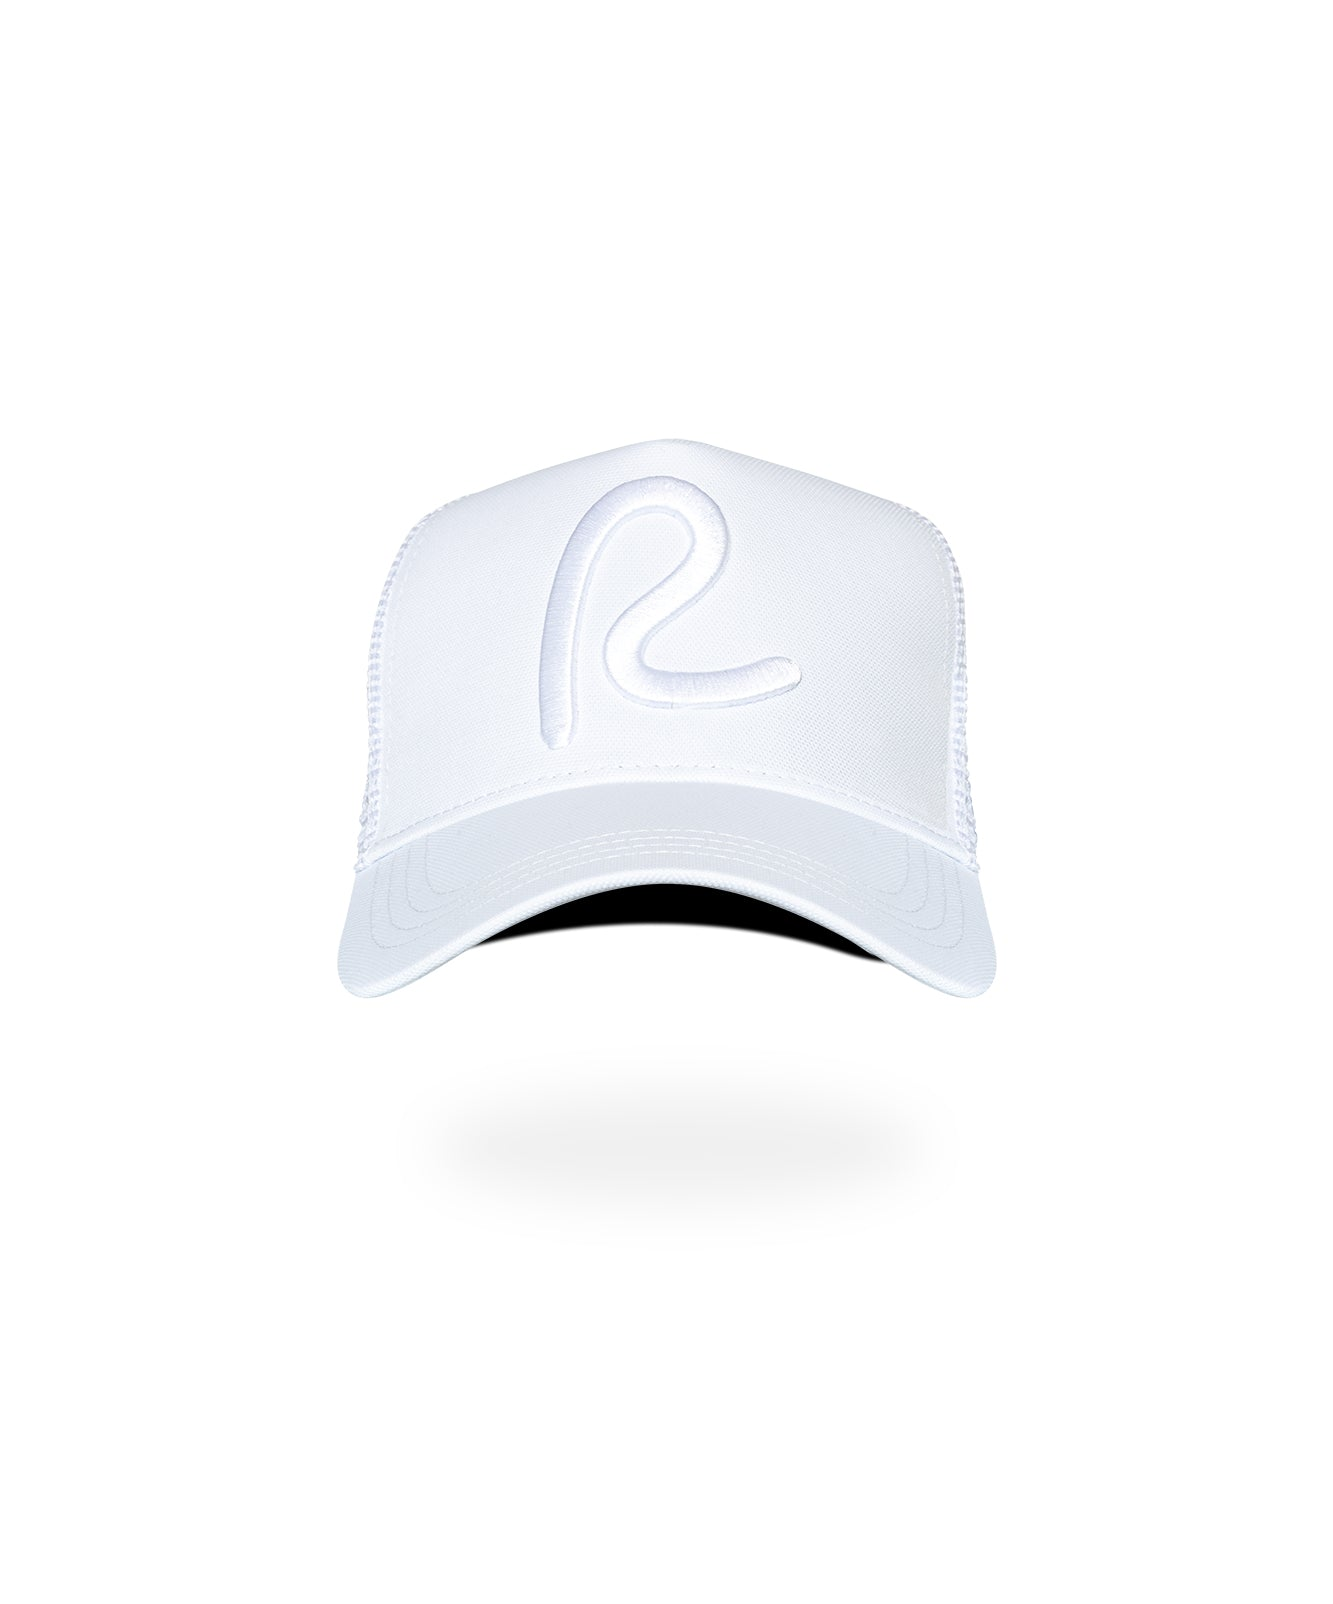 new rewired baseball cap Rewired R embroidery Trucker Cap outdoor casual dad hat